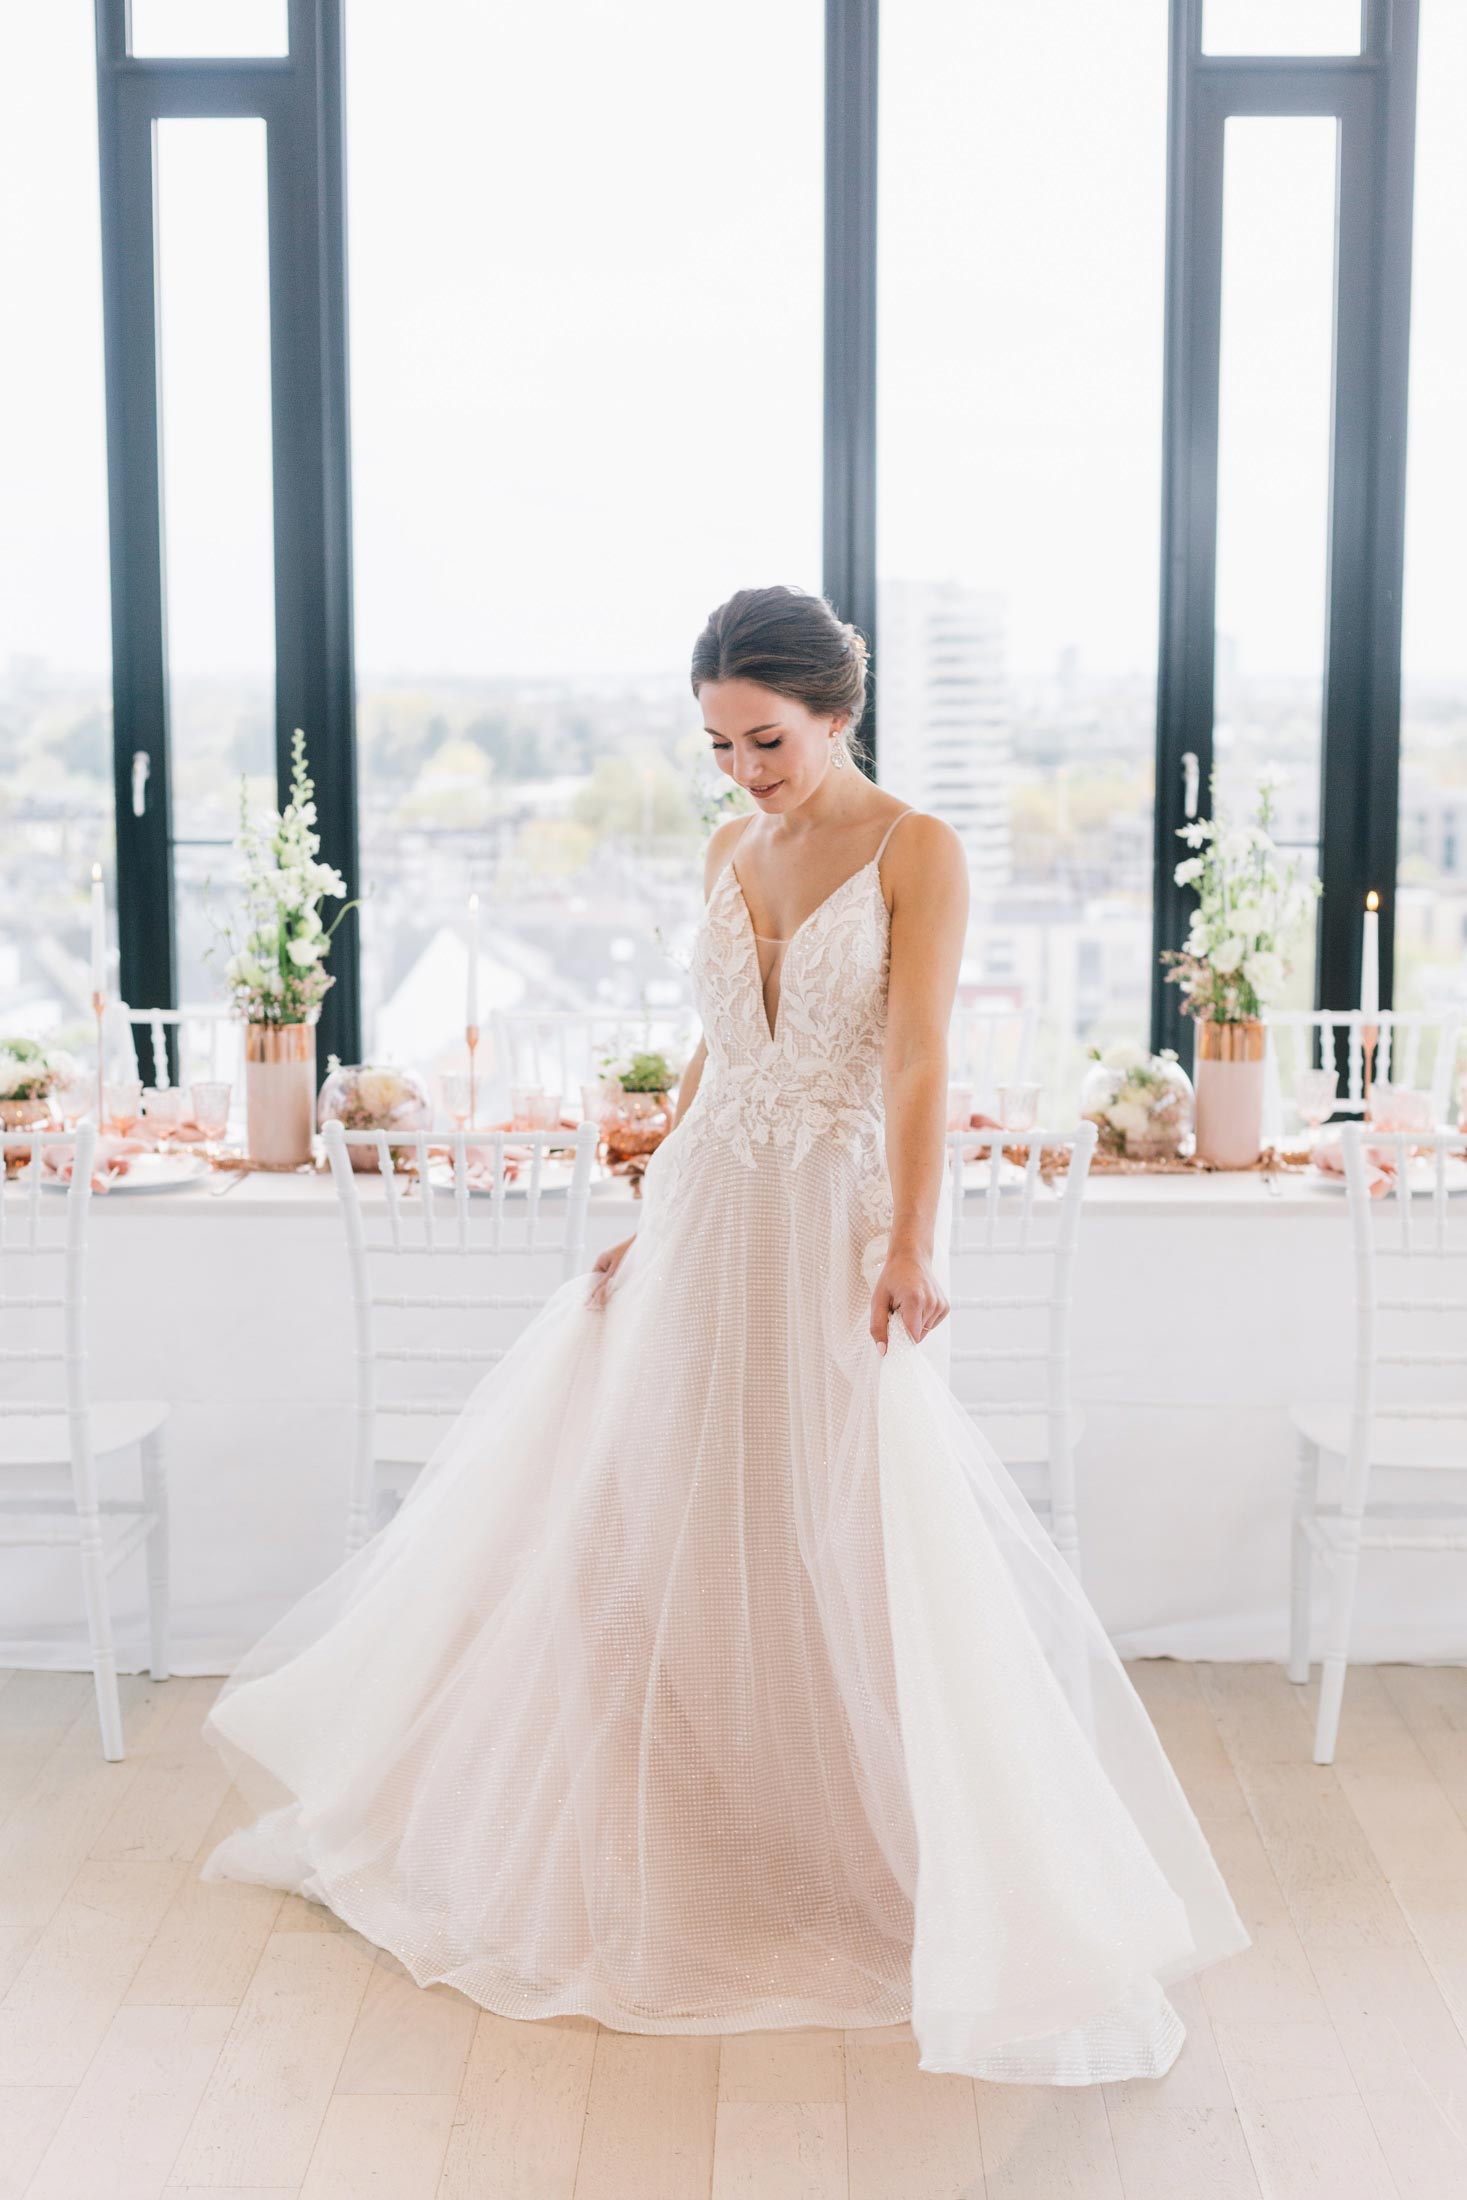 JaneWeber CityGlam 166 Whats your Story Styled Shooting Hochzeit